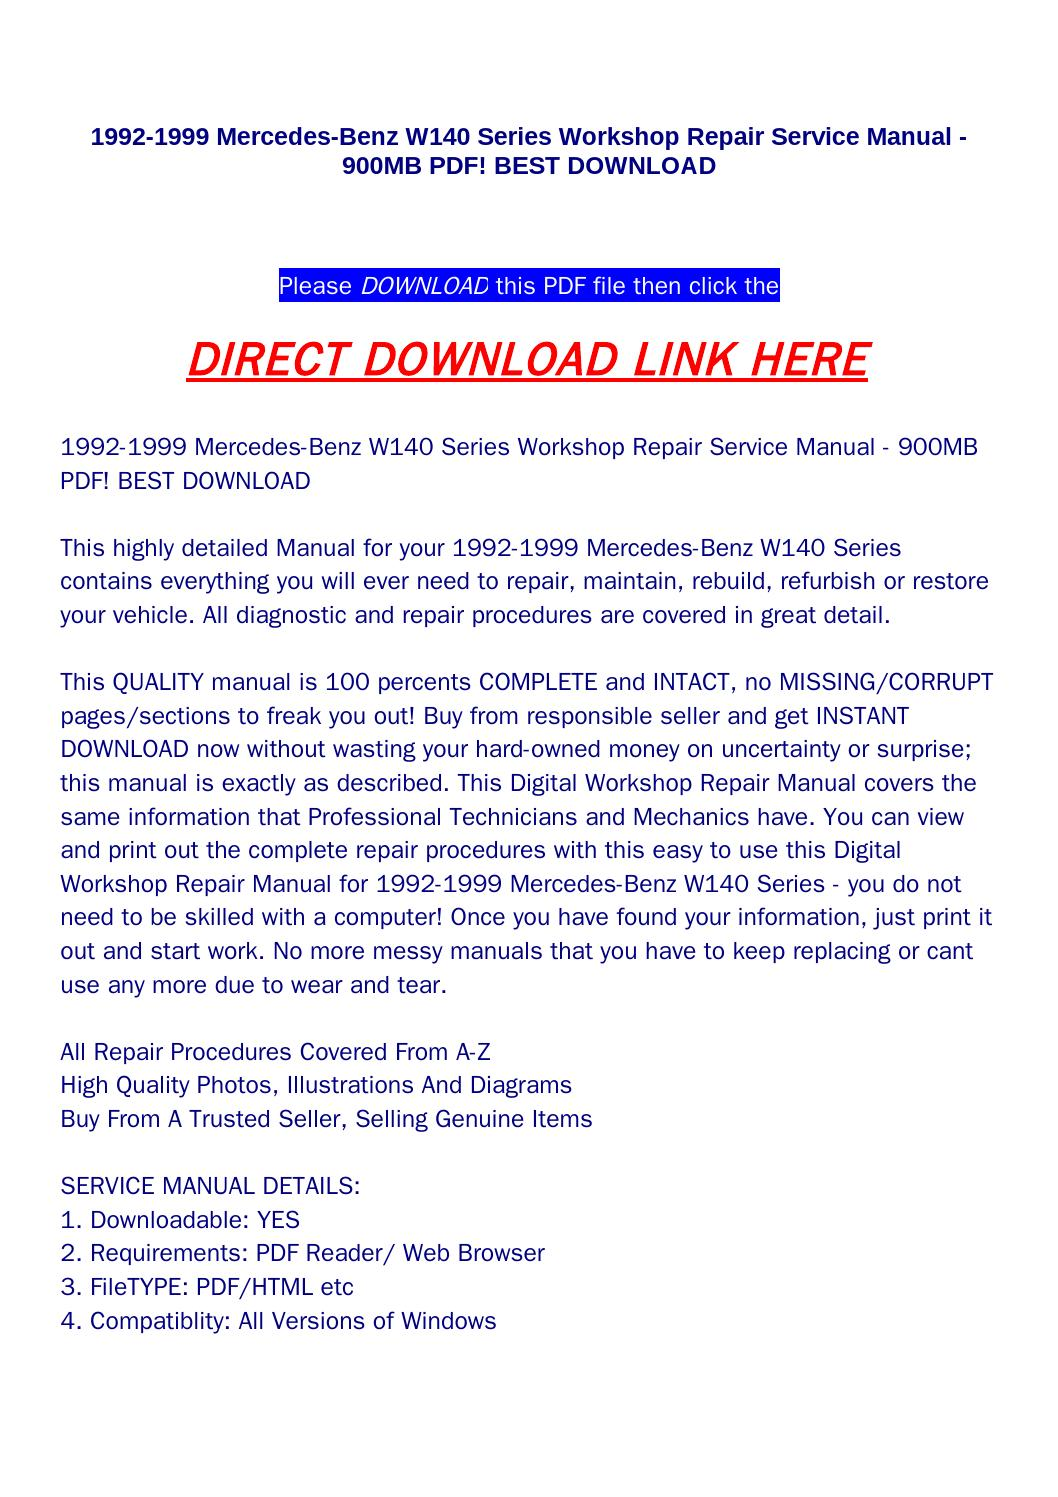 1992 1999 mercedes benz w140 series workshop repair service manual 900mb  pdf! best download by huou - issuu